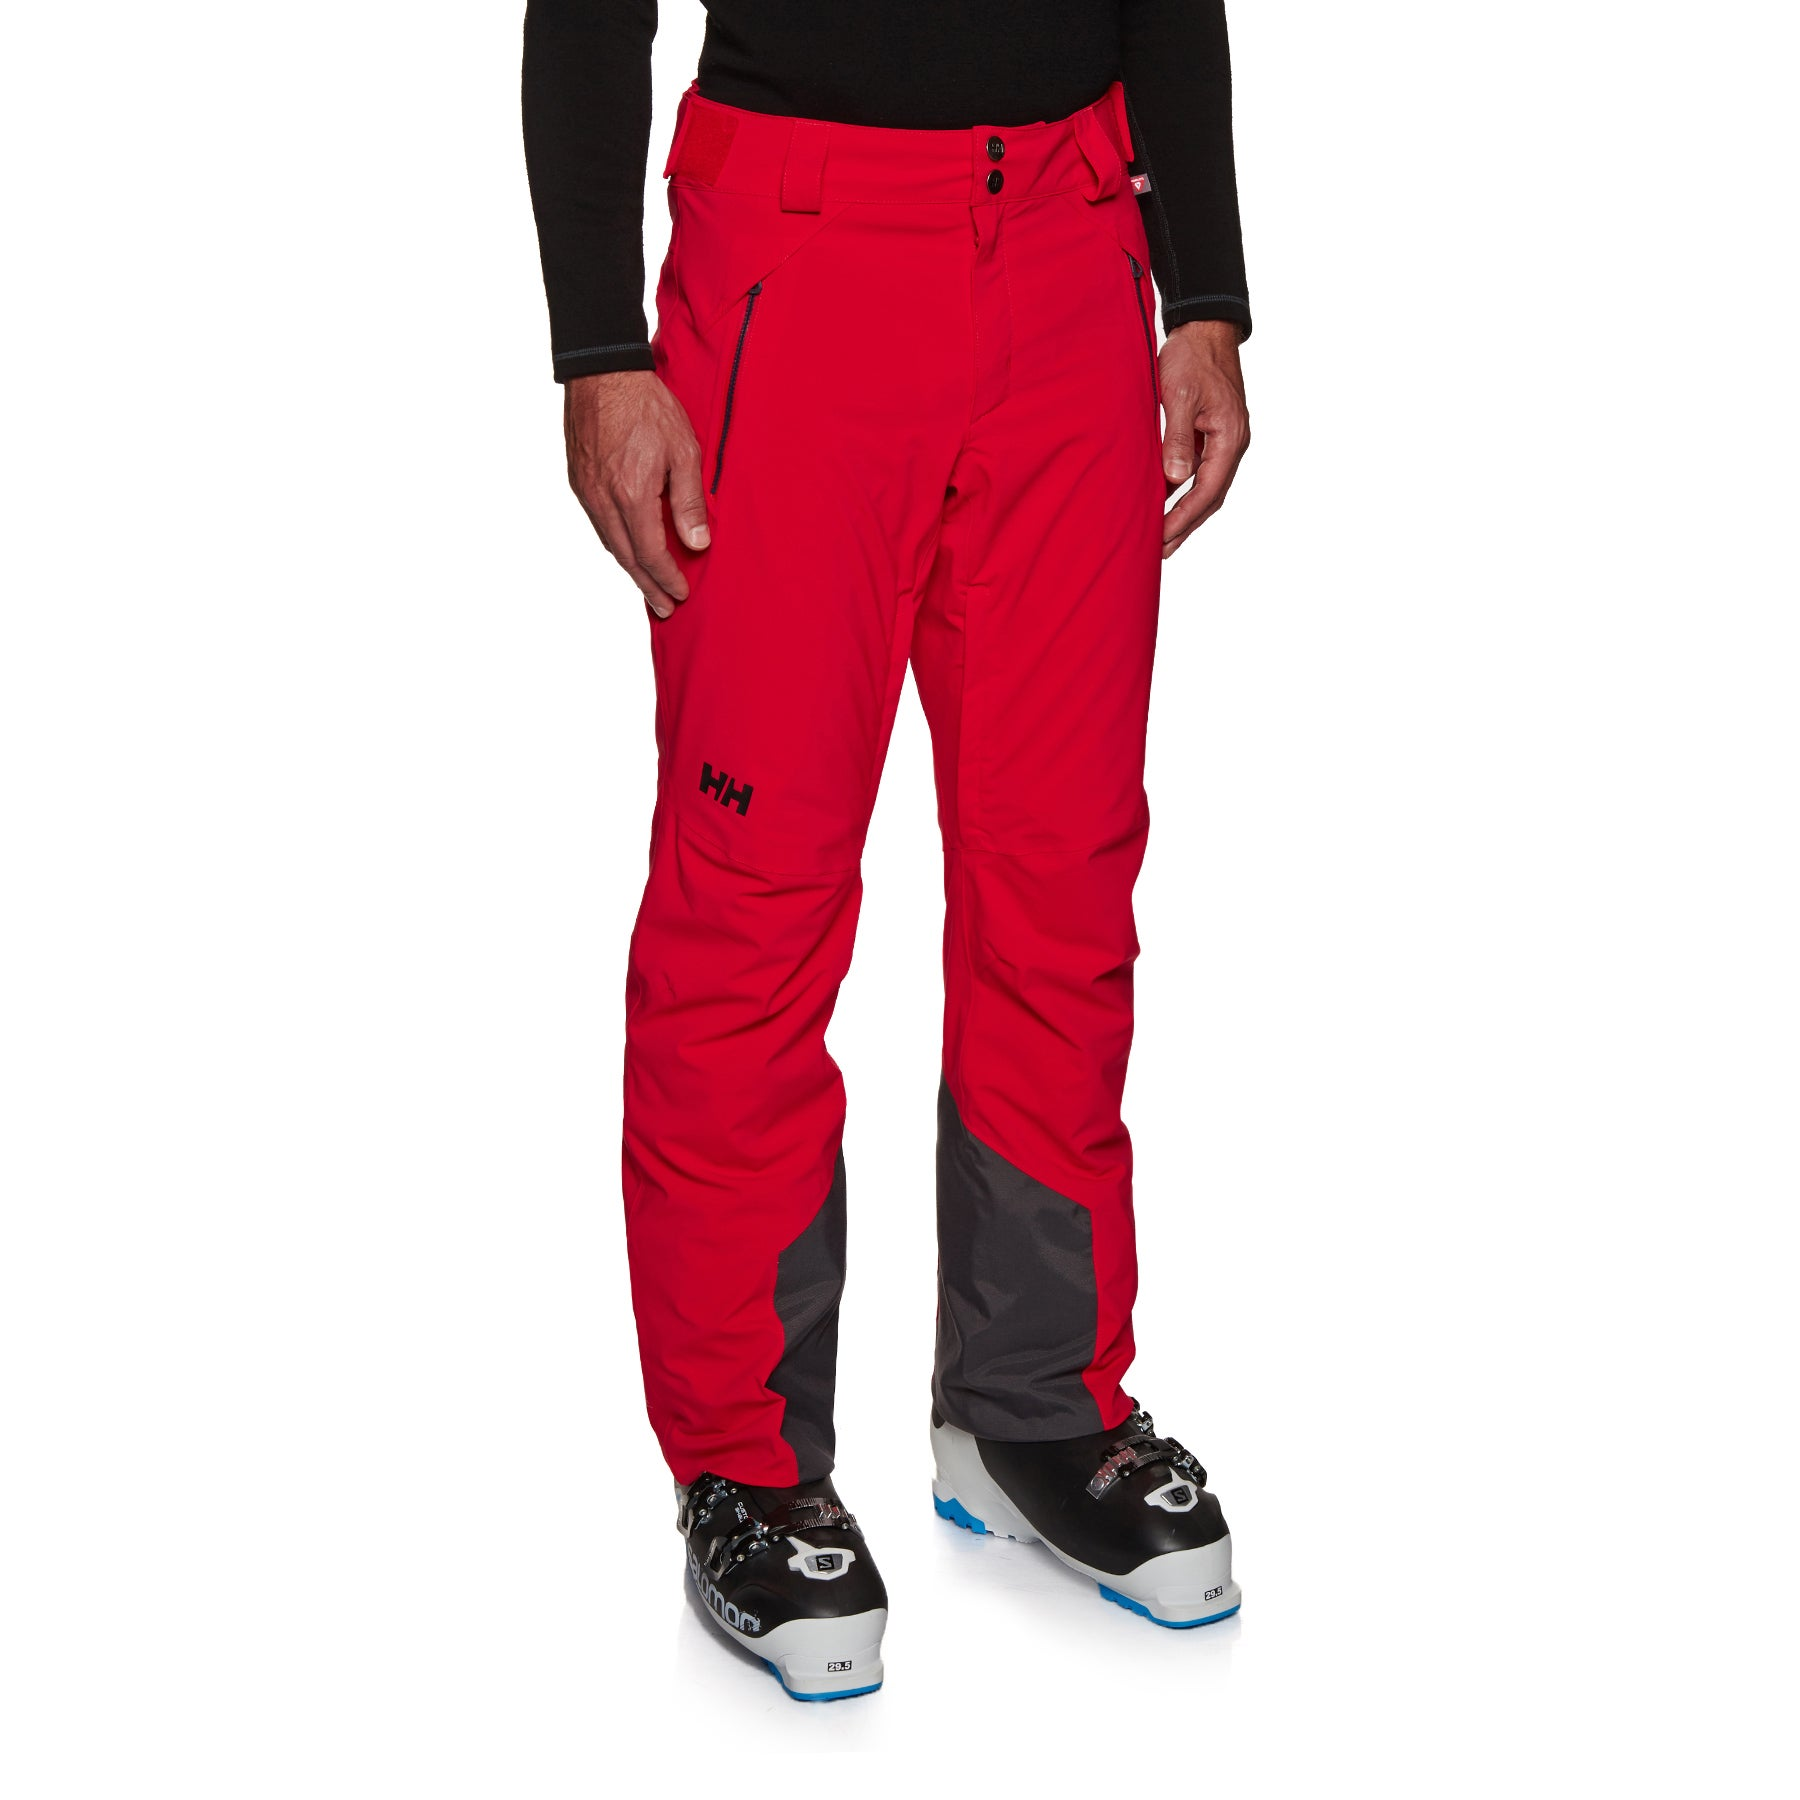 Pantalons pour Snowboard Helly Hansen Force - Flag Red